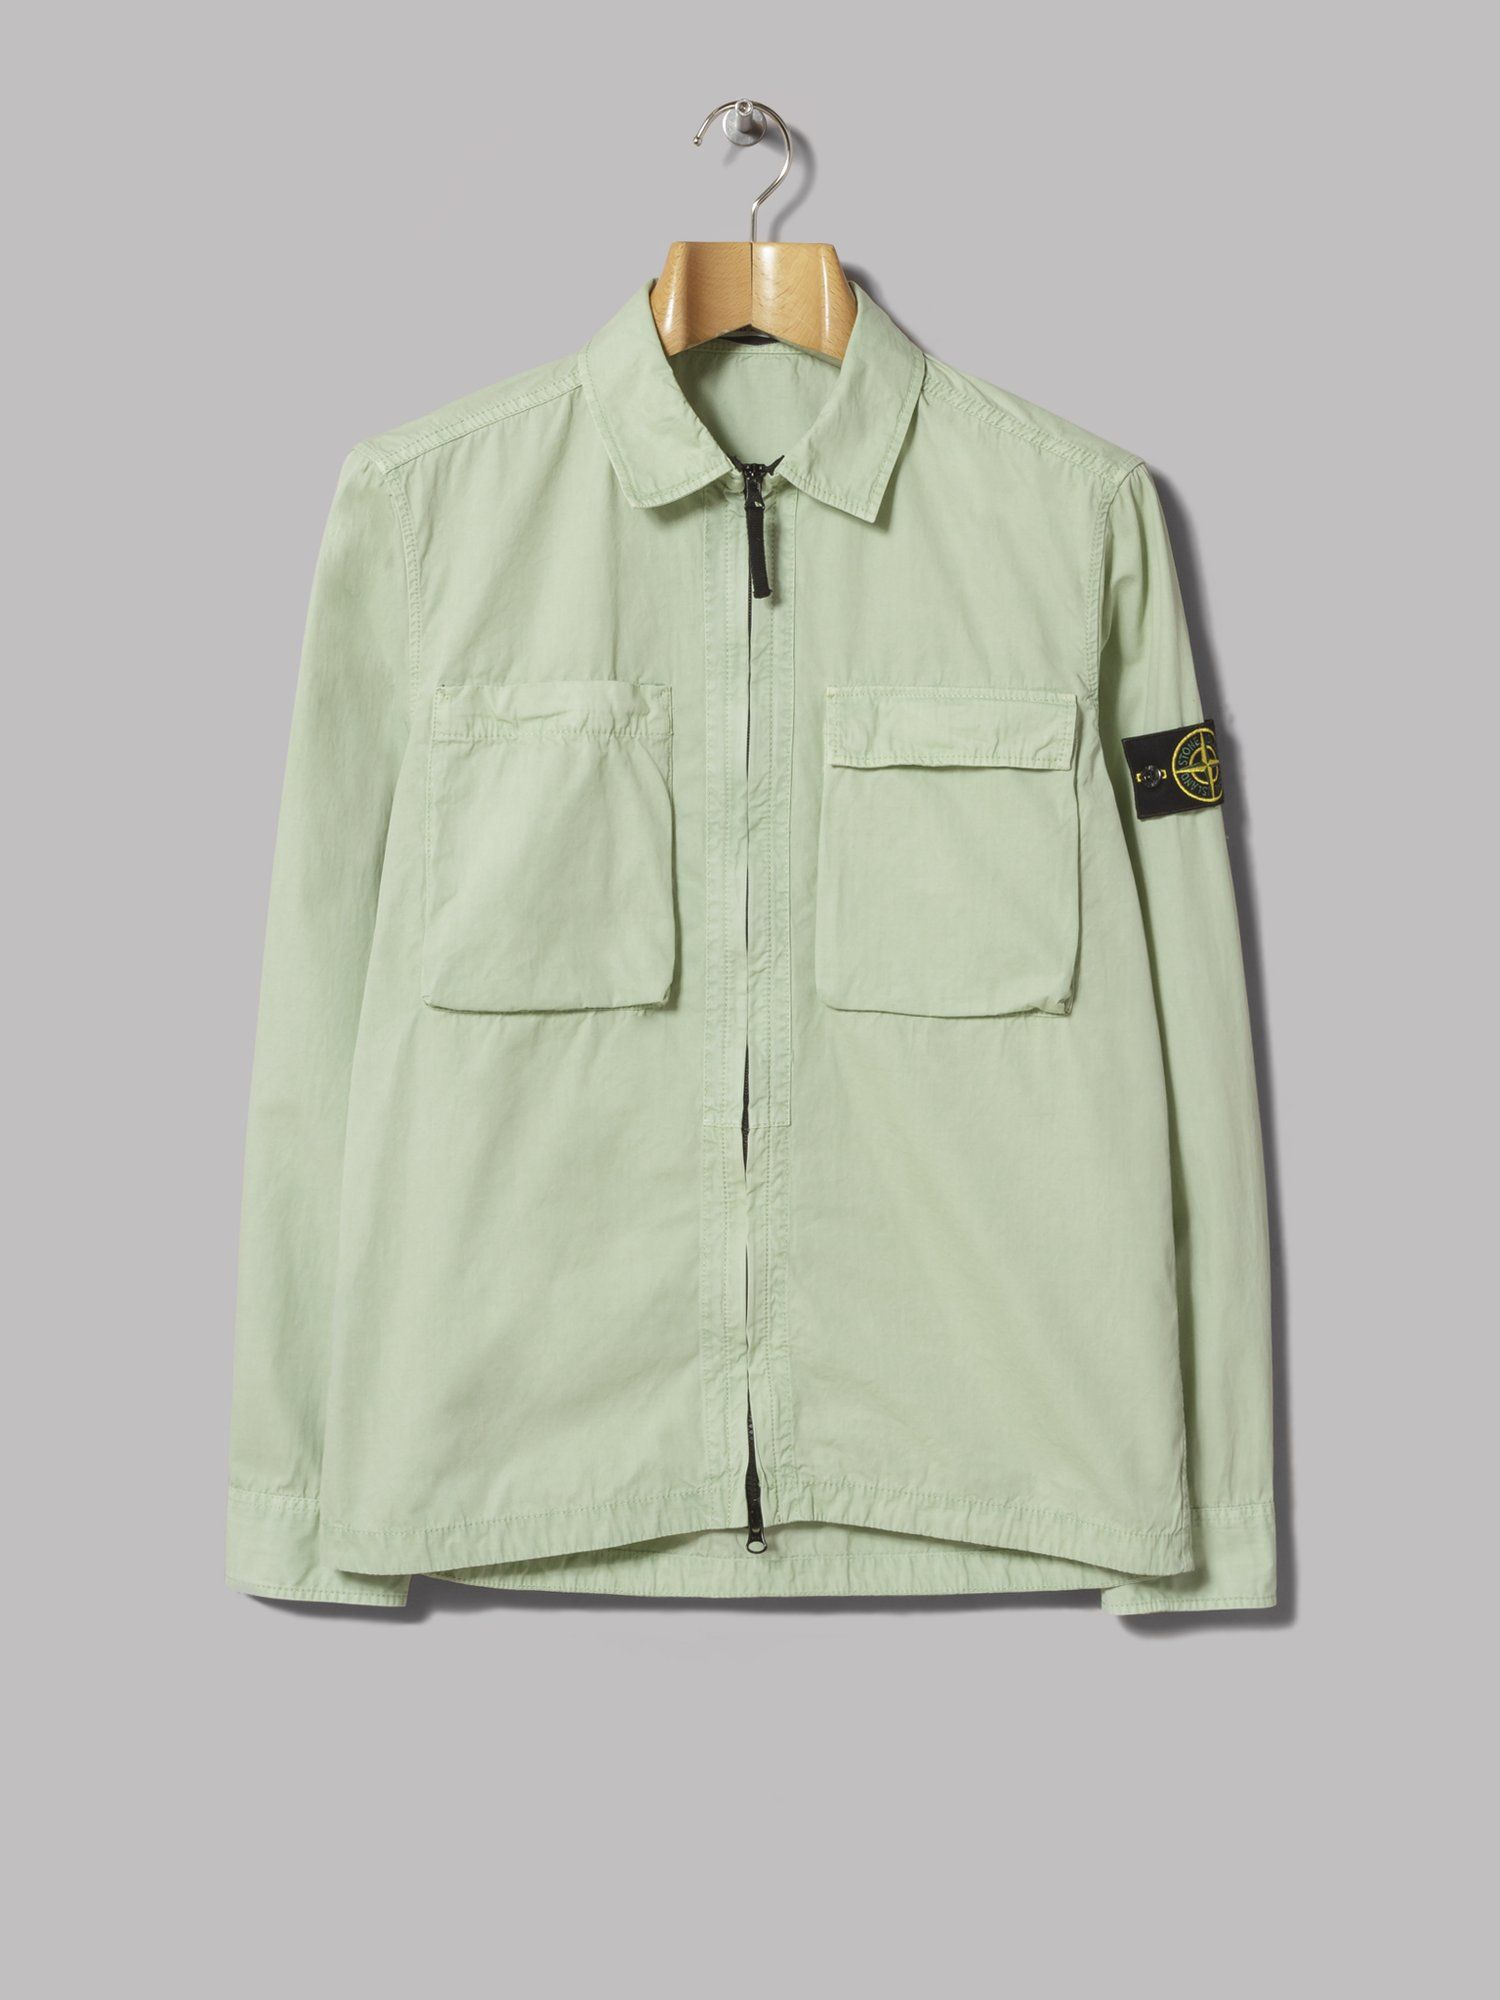 bb22a109 Stone Island Old Effect Brushed Cotton Canvas Overshirt (Verde Chiaro)